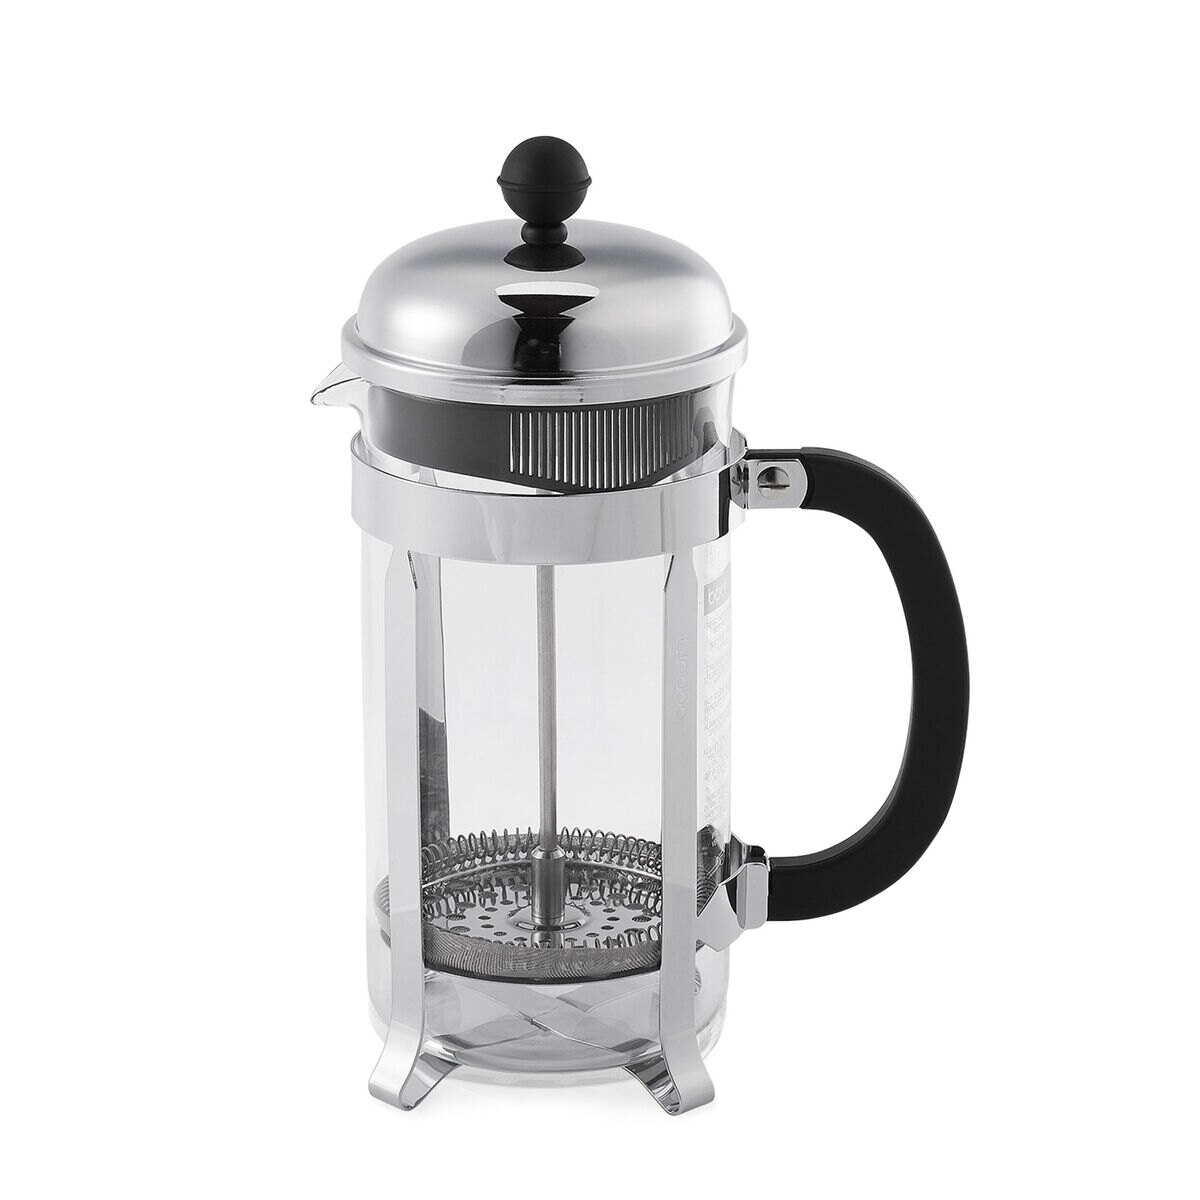 French Press Coffee Maker Cholesterol : Bodum Chambord French Press - Moka Pots & French Presses - illy eShop